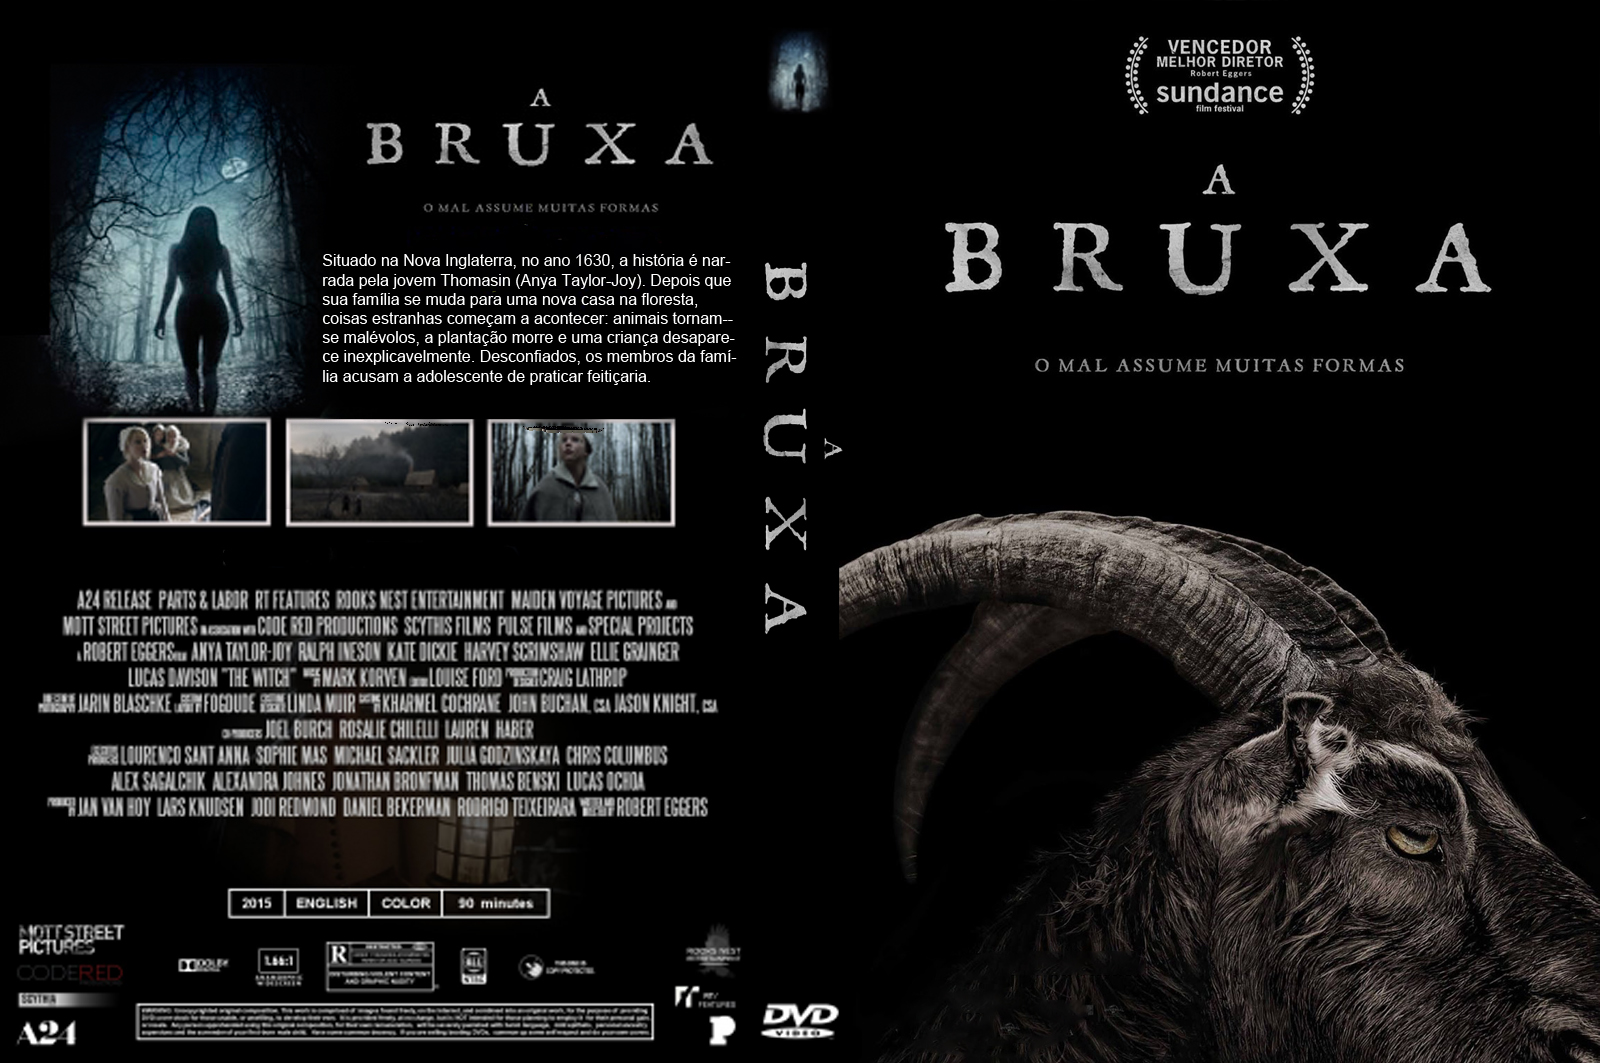 Download A Bruxa DVD-R A 2BBruxa 2B2016